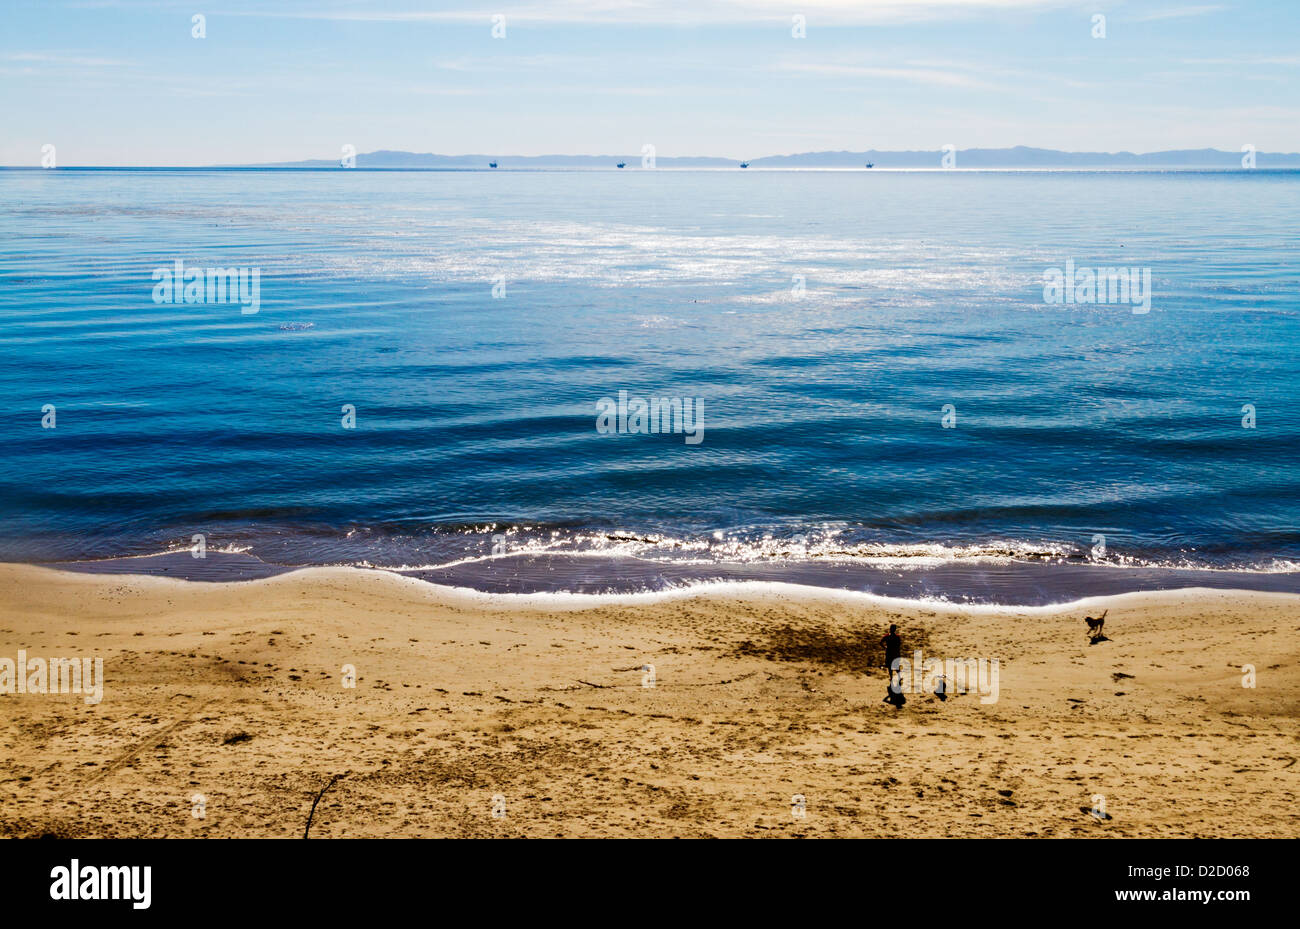 Man, child, and dog on a beach in Summerland, California - Stock Image